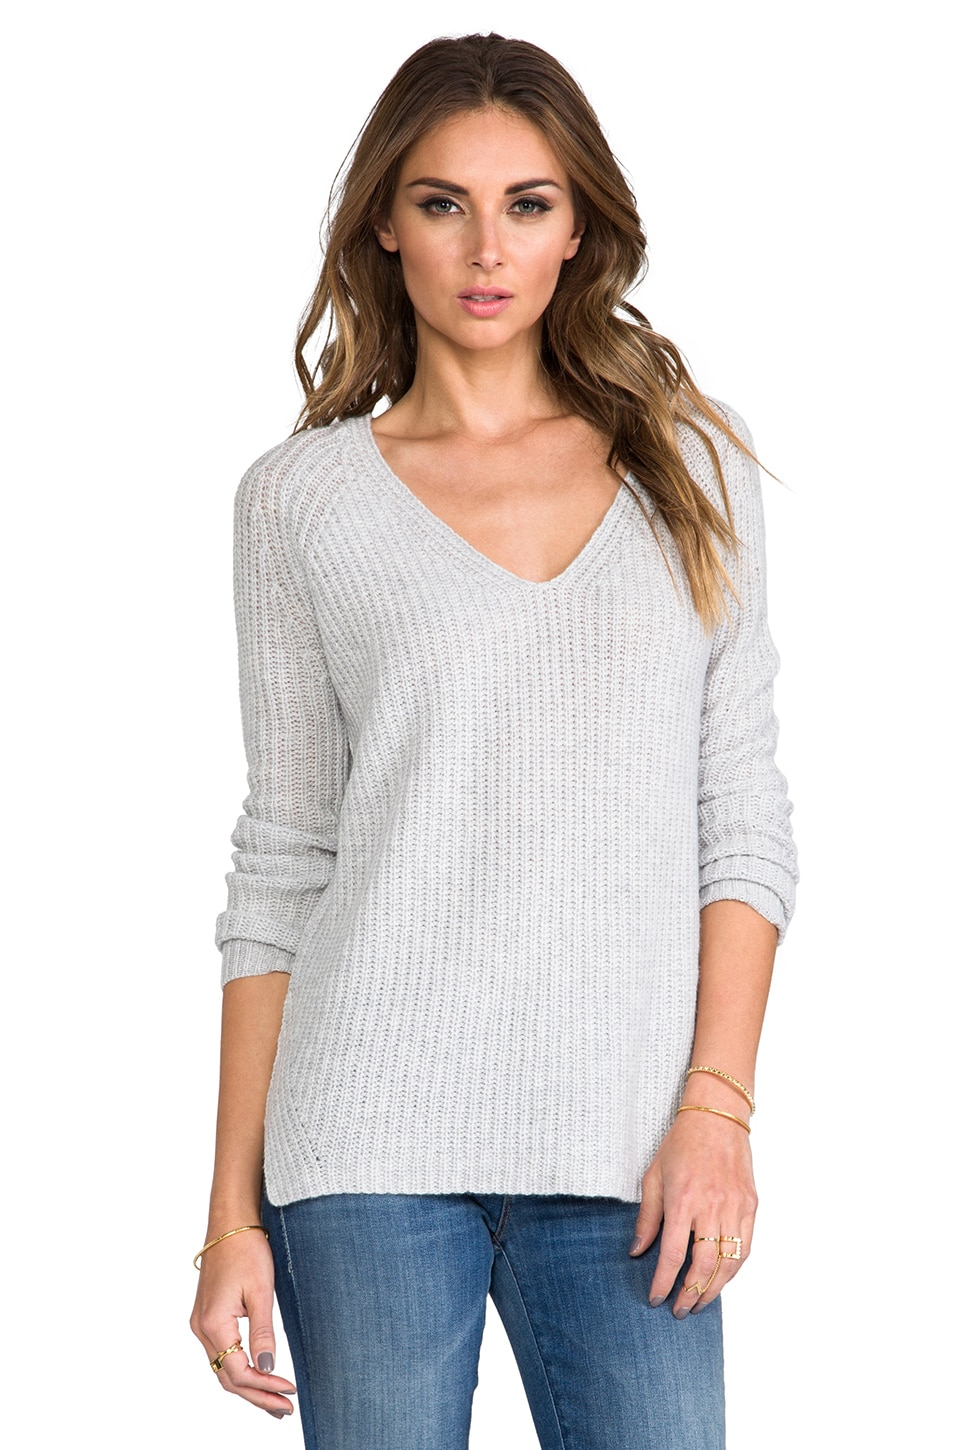 Theory Cashmere Tarladia Sweater in Icy Grey